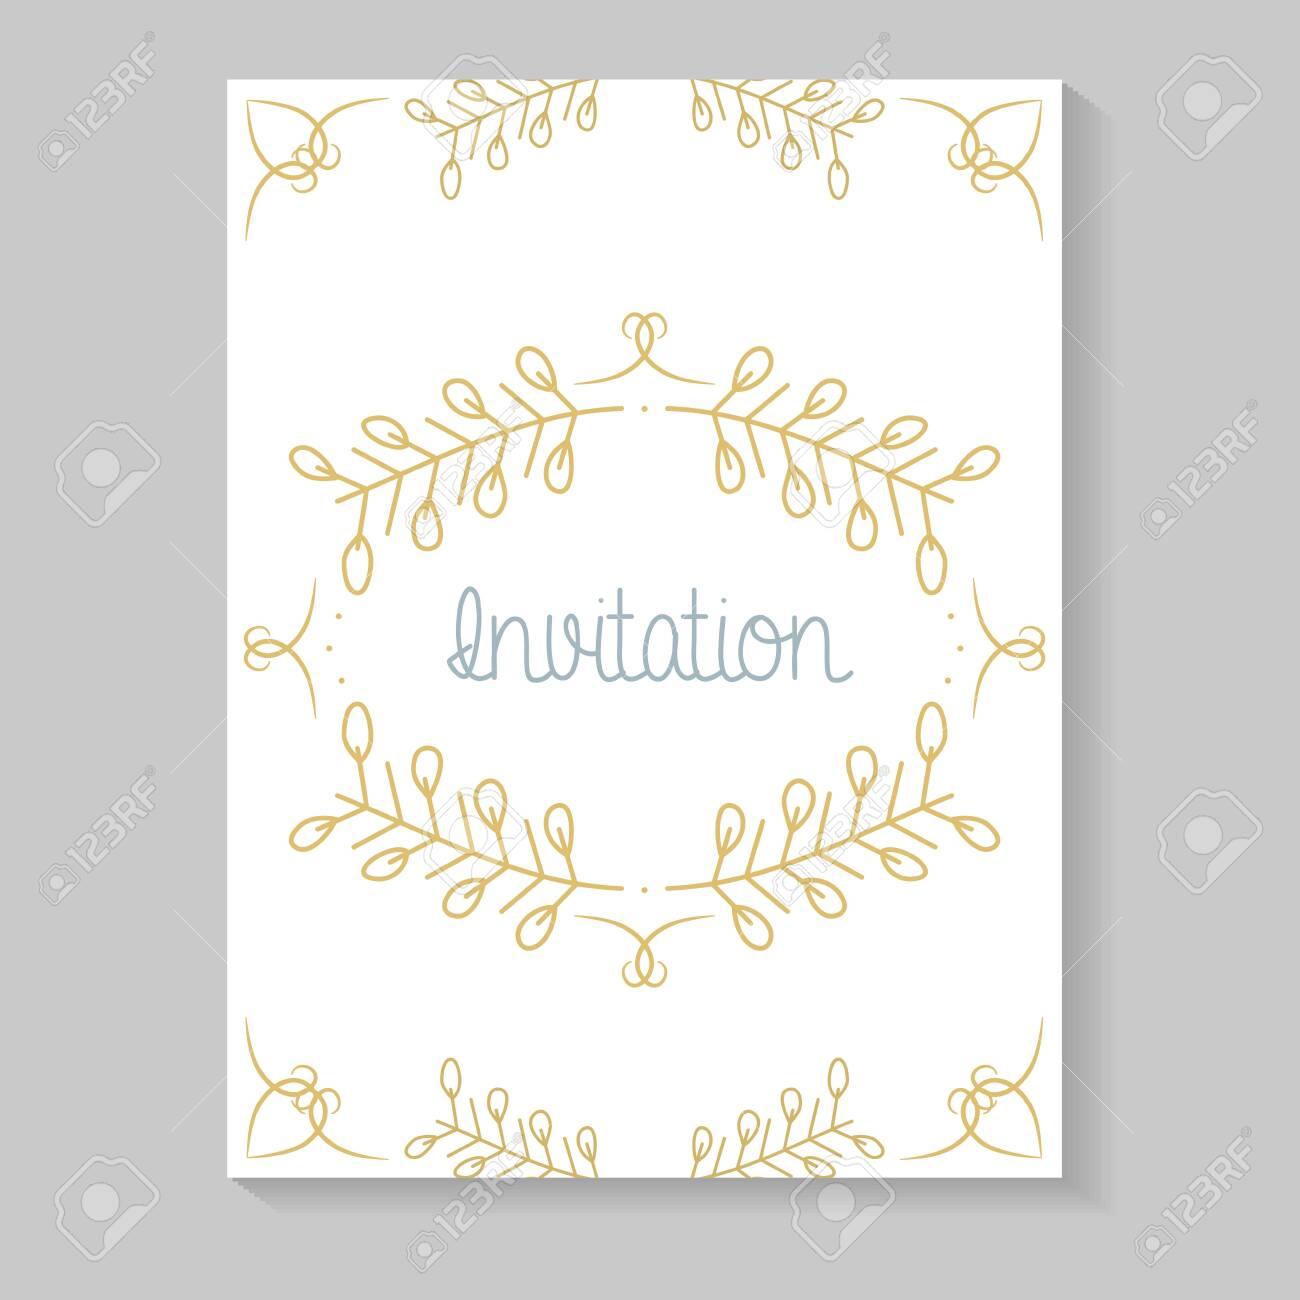 invitation card with leafs golden calligraphy - 136365486